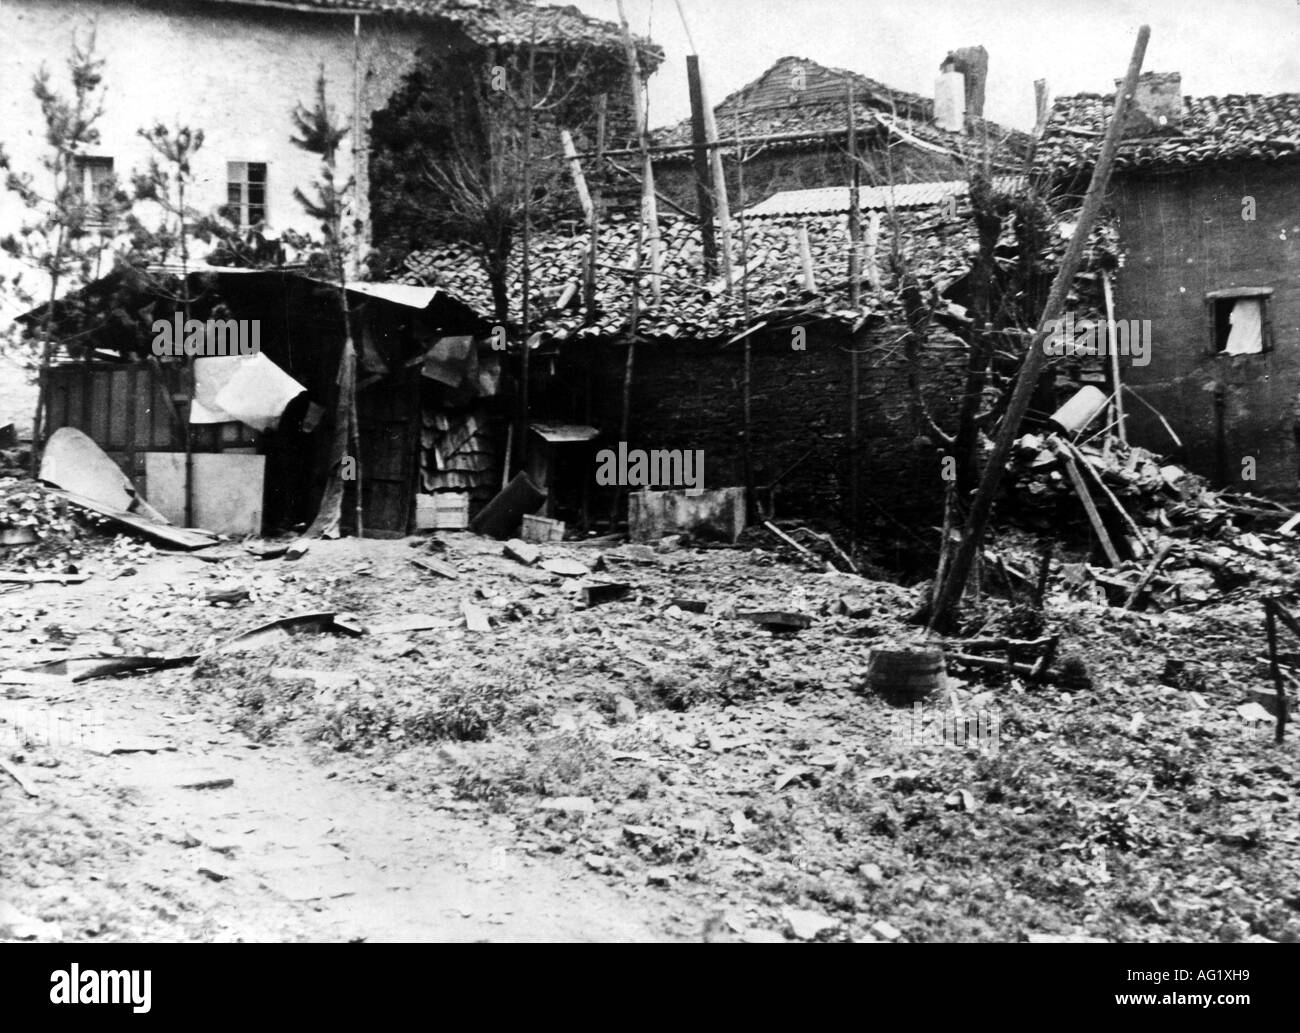 geography / travel, Spain, Spanish Civil War 1936 - 1939, Guernica, ruins after the air raid by the 'Legion Condor' 26.4.1937, Additional-Rights-Clearances-NA - Stock Image